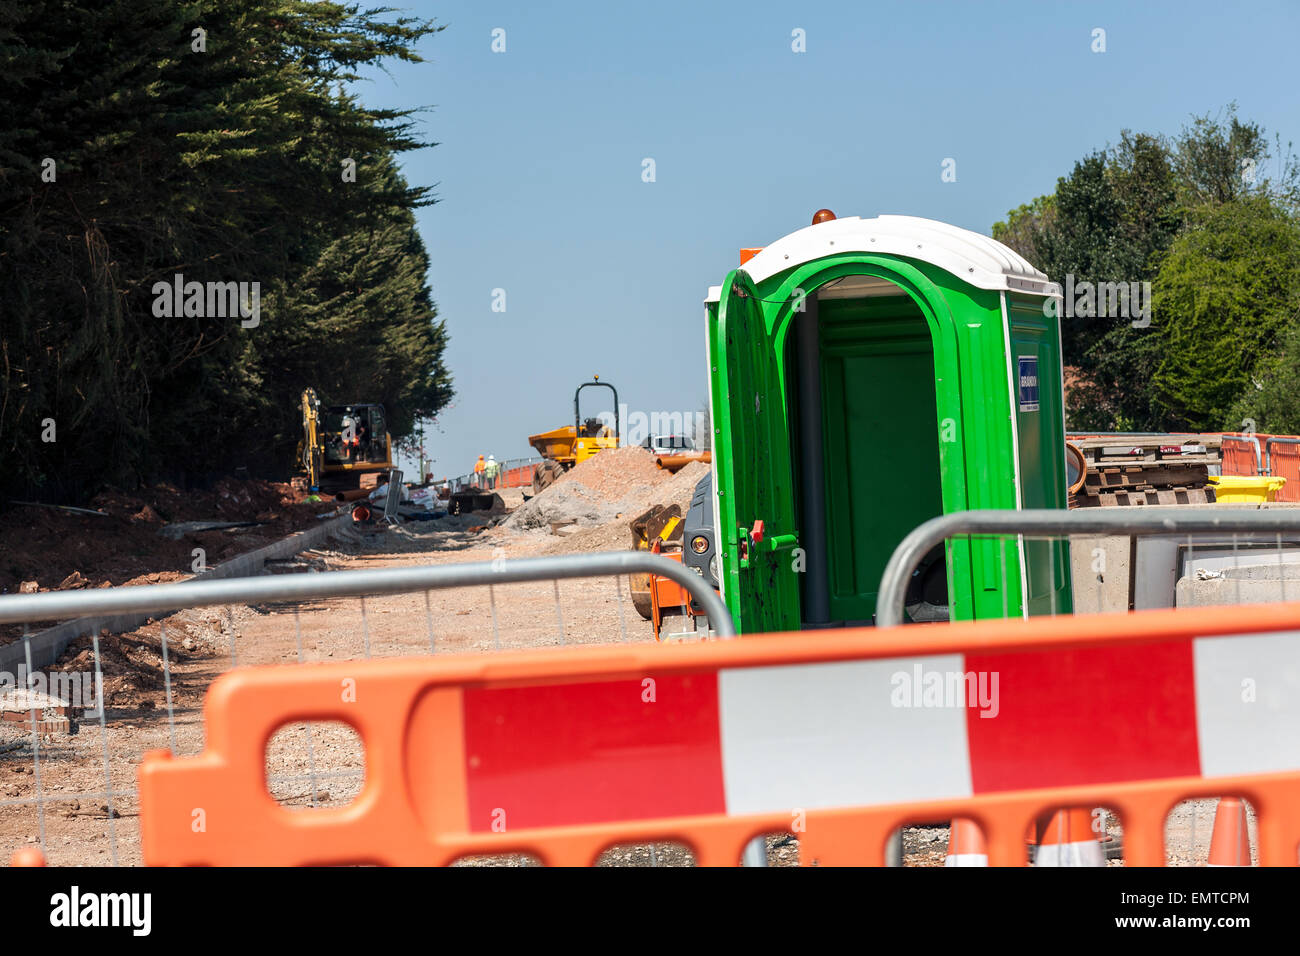 Little Johns Portable Toilets Little John Portable Urinal